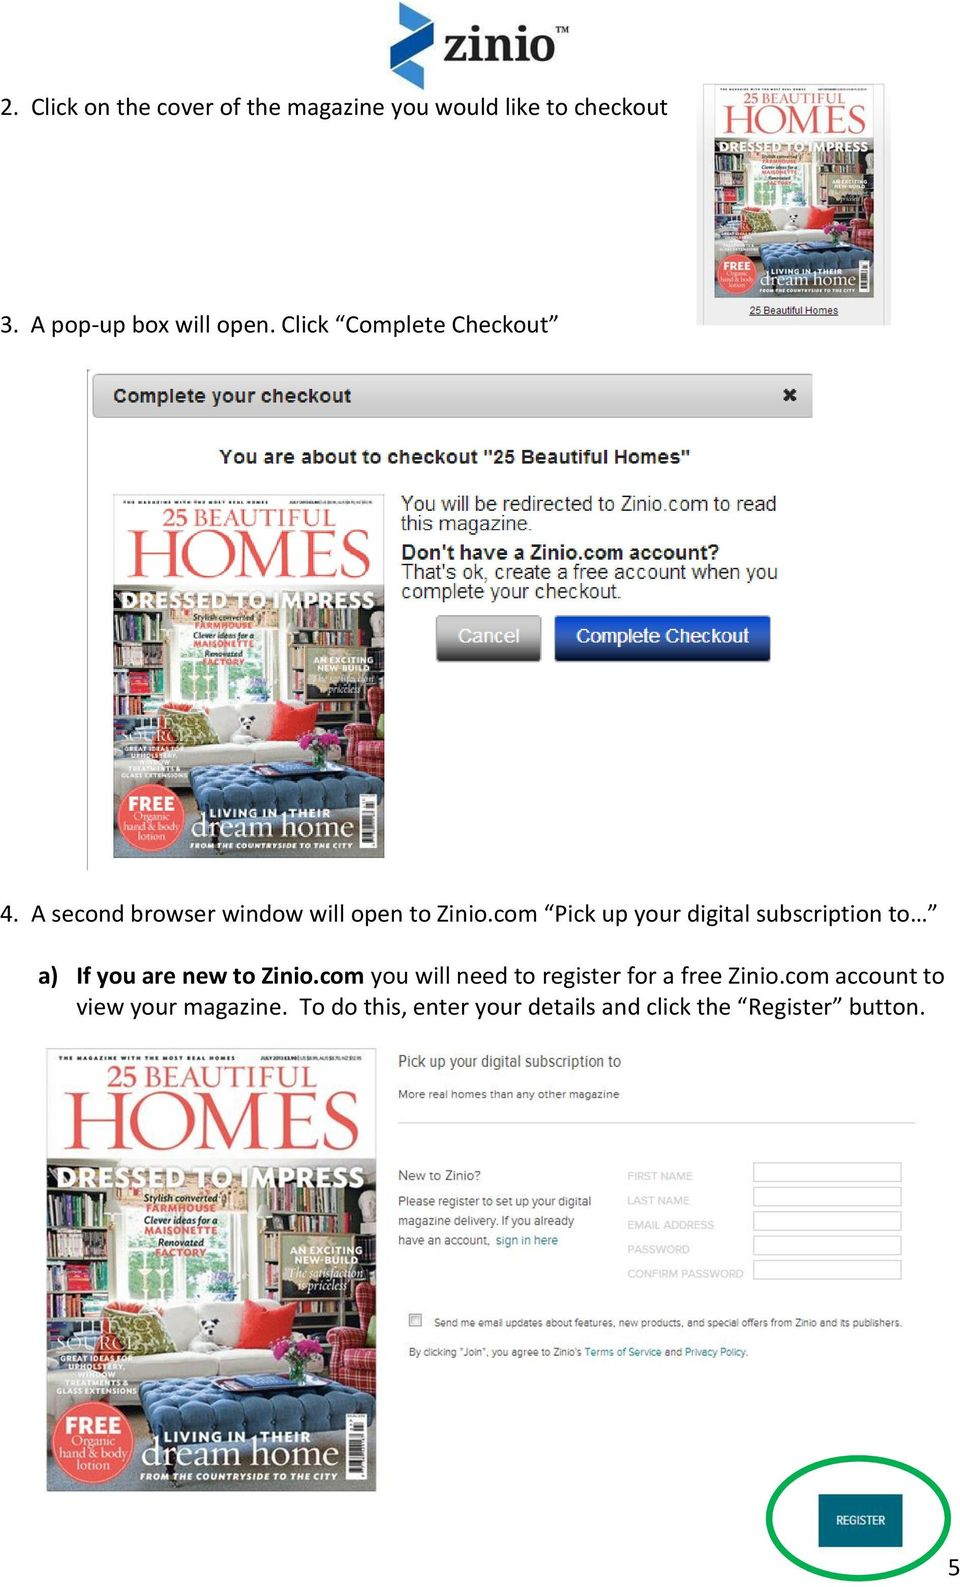 com Pick up your digital subscription to a) If you are new to Zinio.